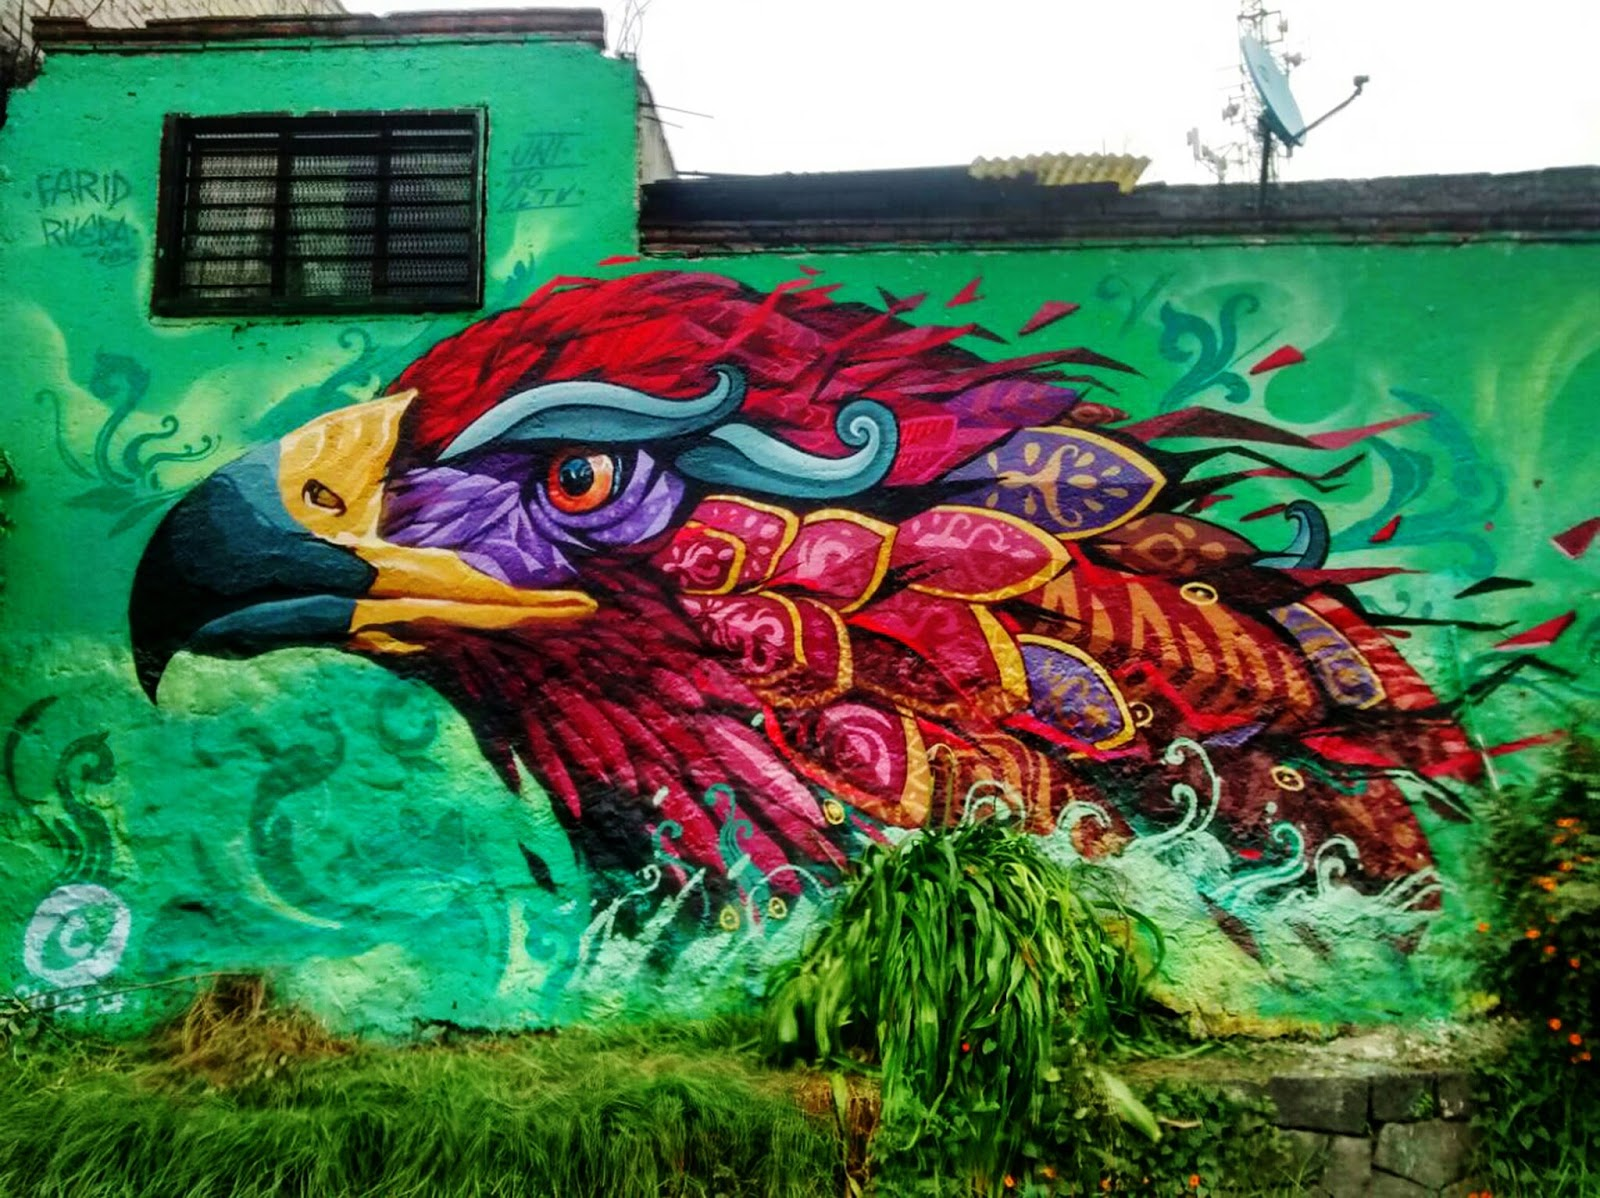 Arte En Mexico Df Wings Of Destiny Quot A New Mural By Farid Rueda In Mexico Df